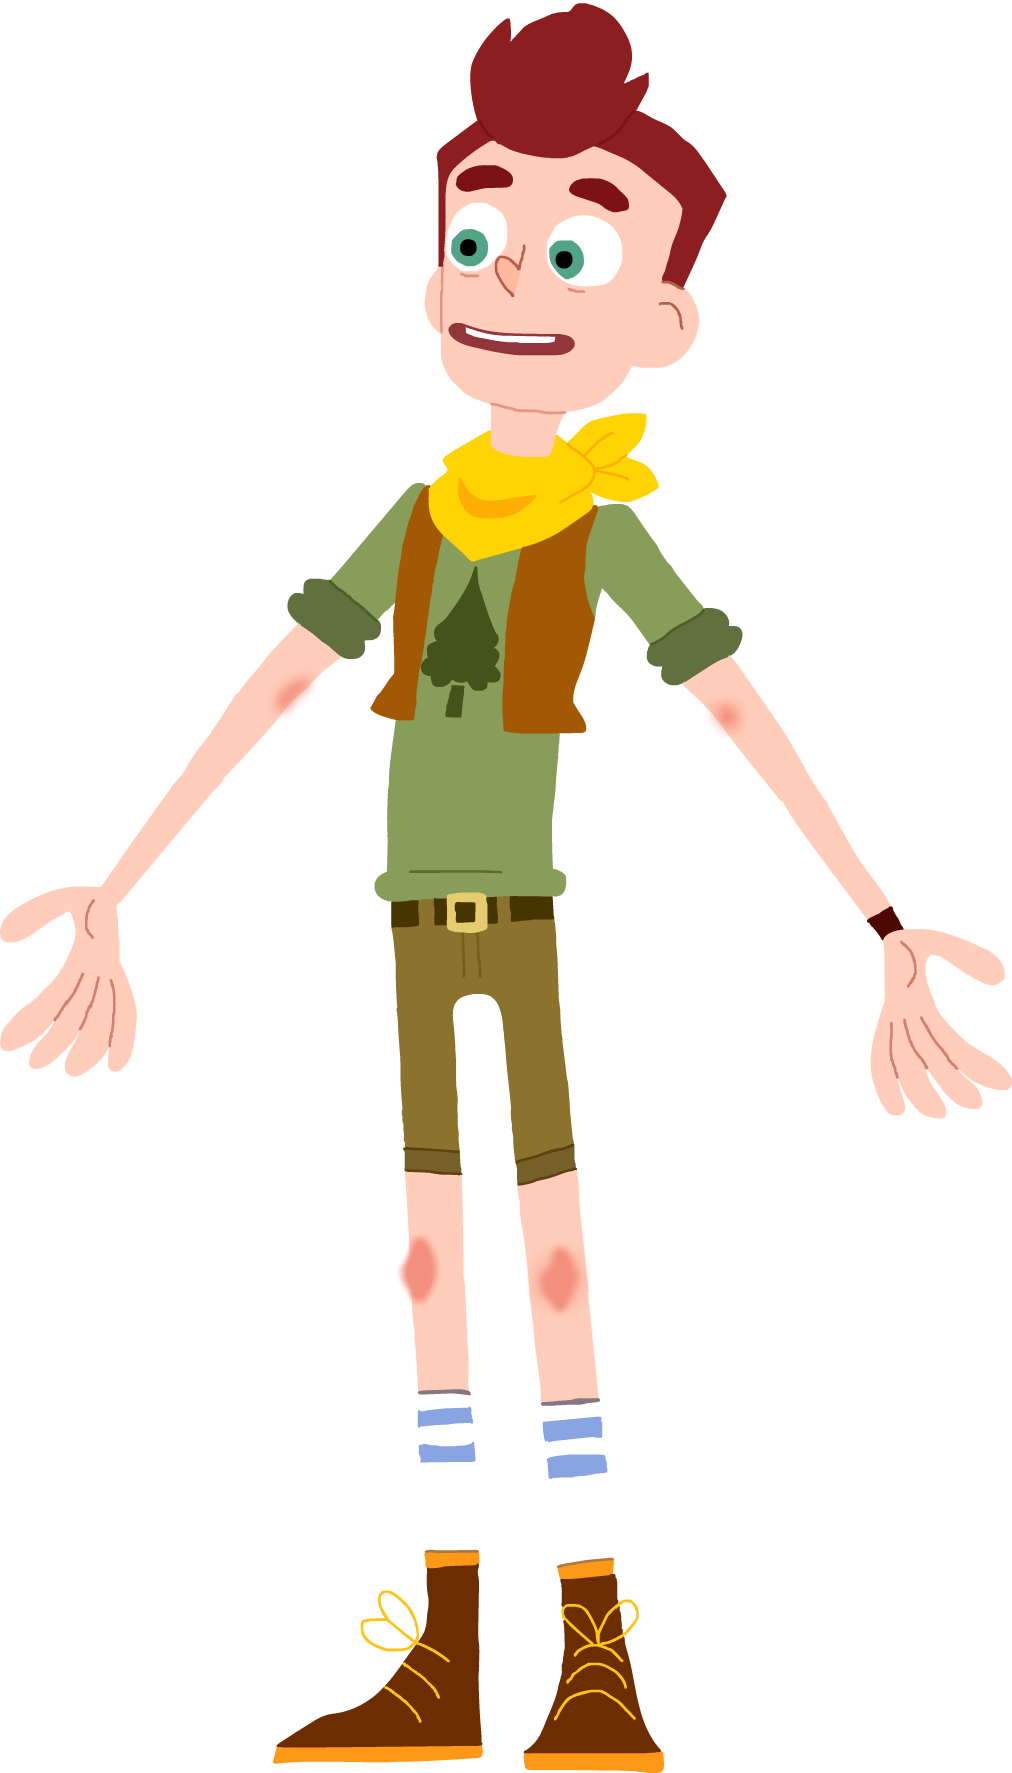 David camp wikia fandom. Old clipart innocent person